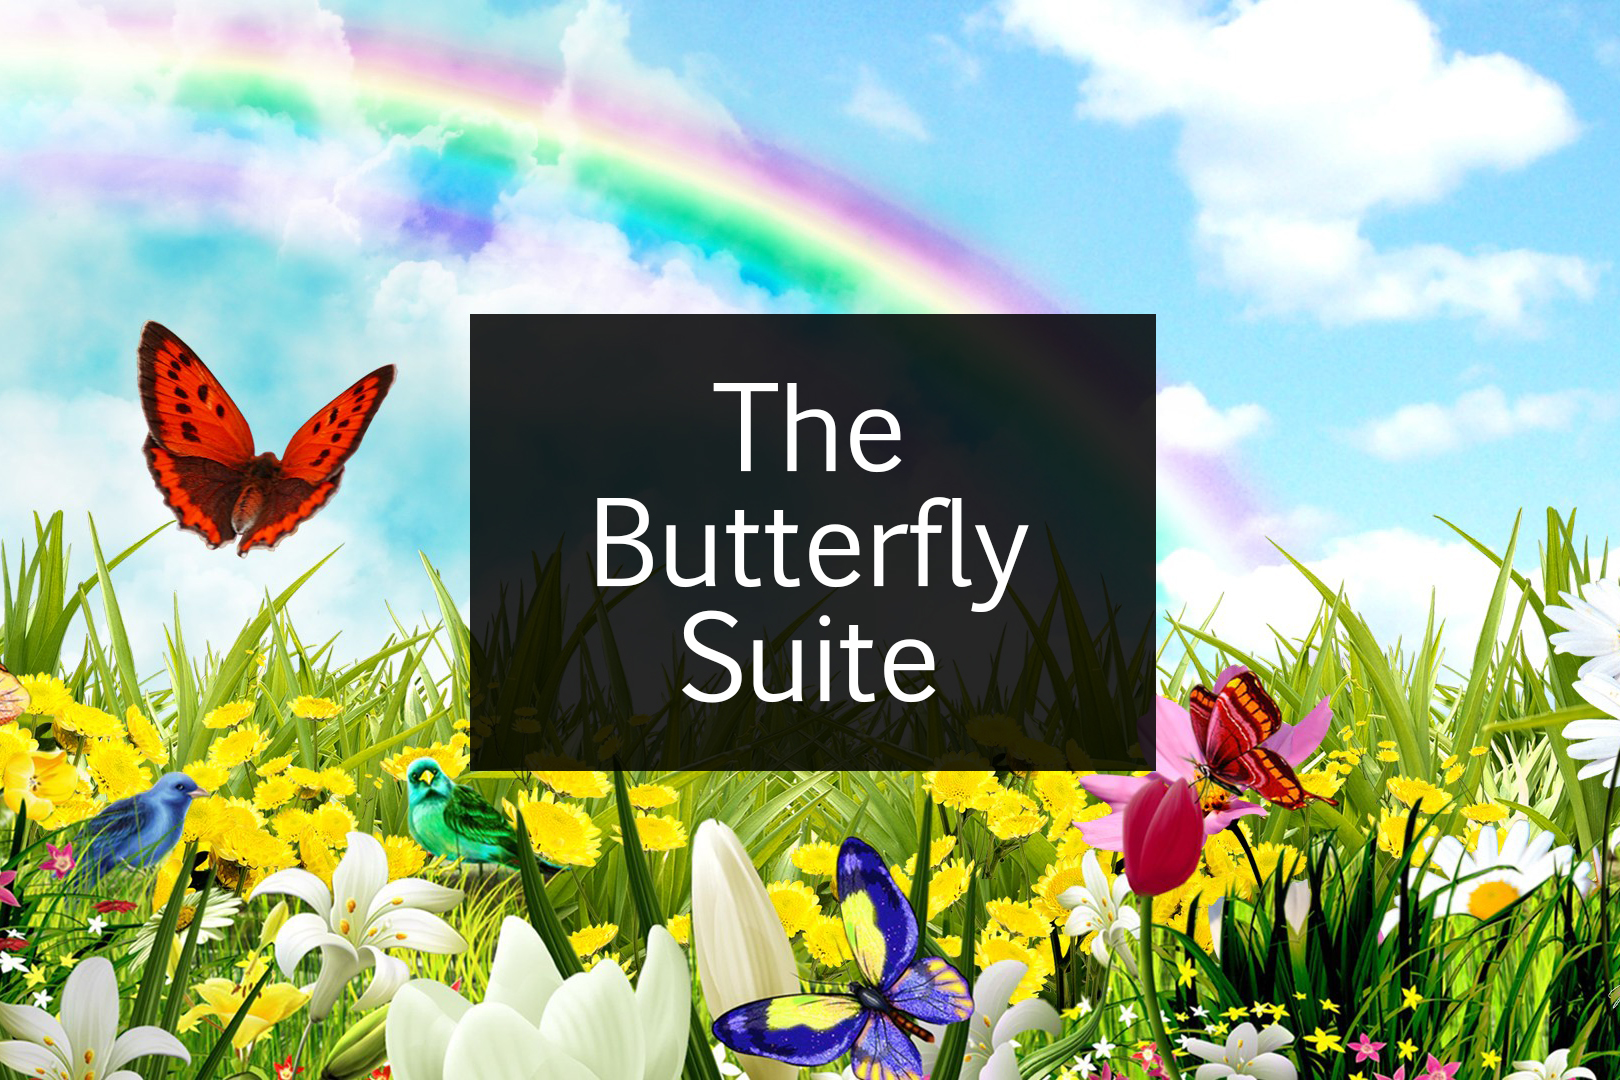 The Butterfly Suite